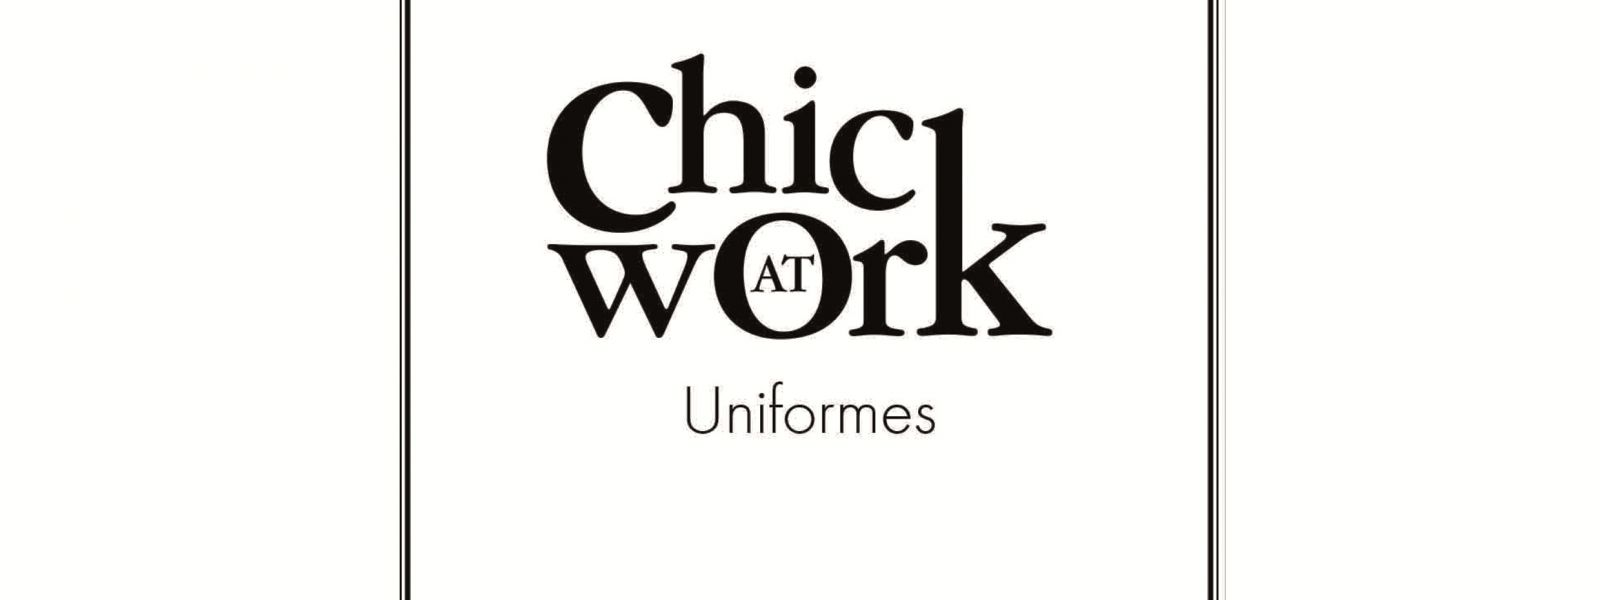 Chic at work